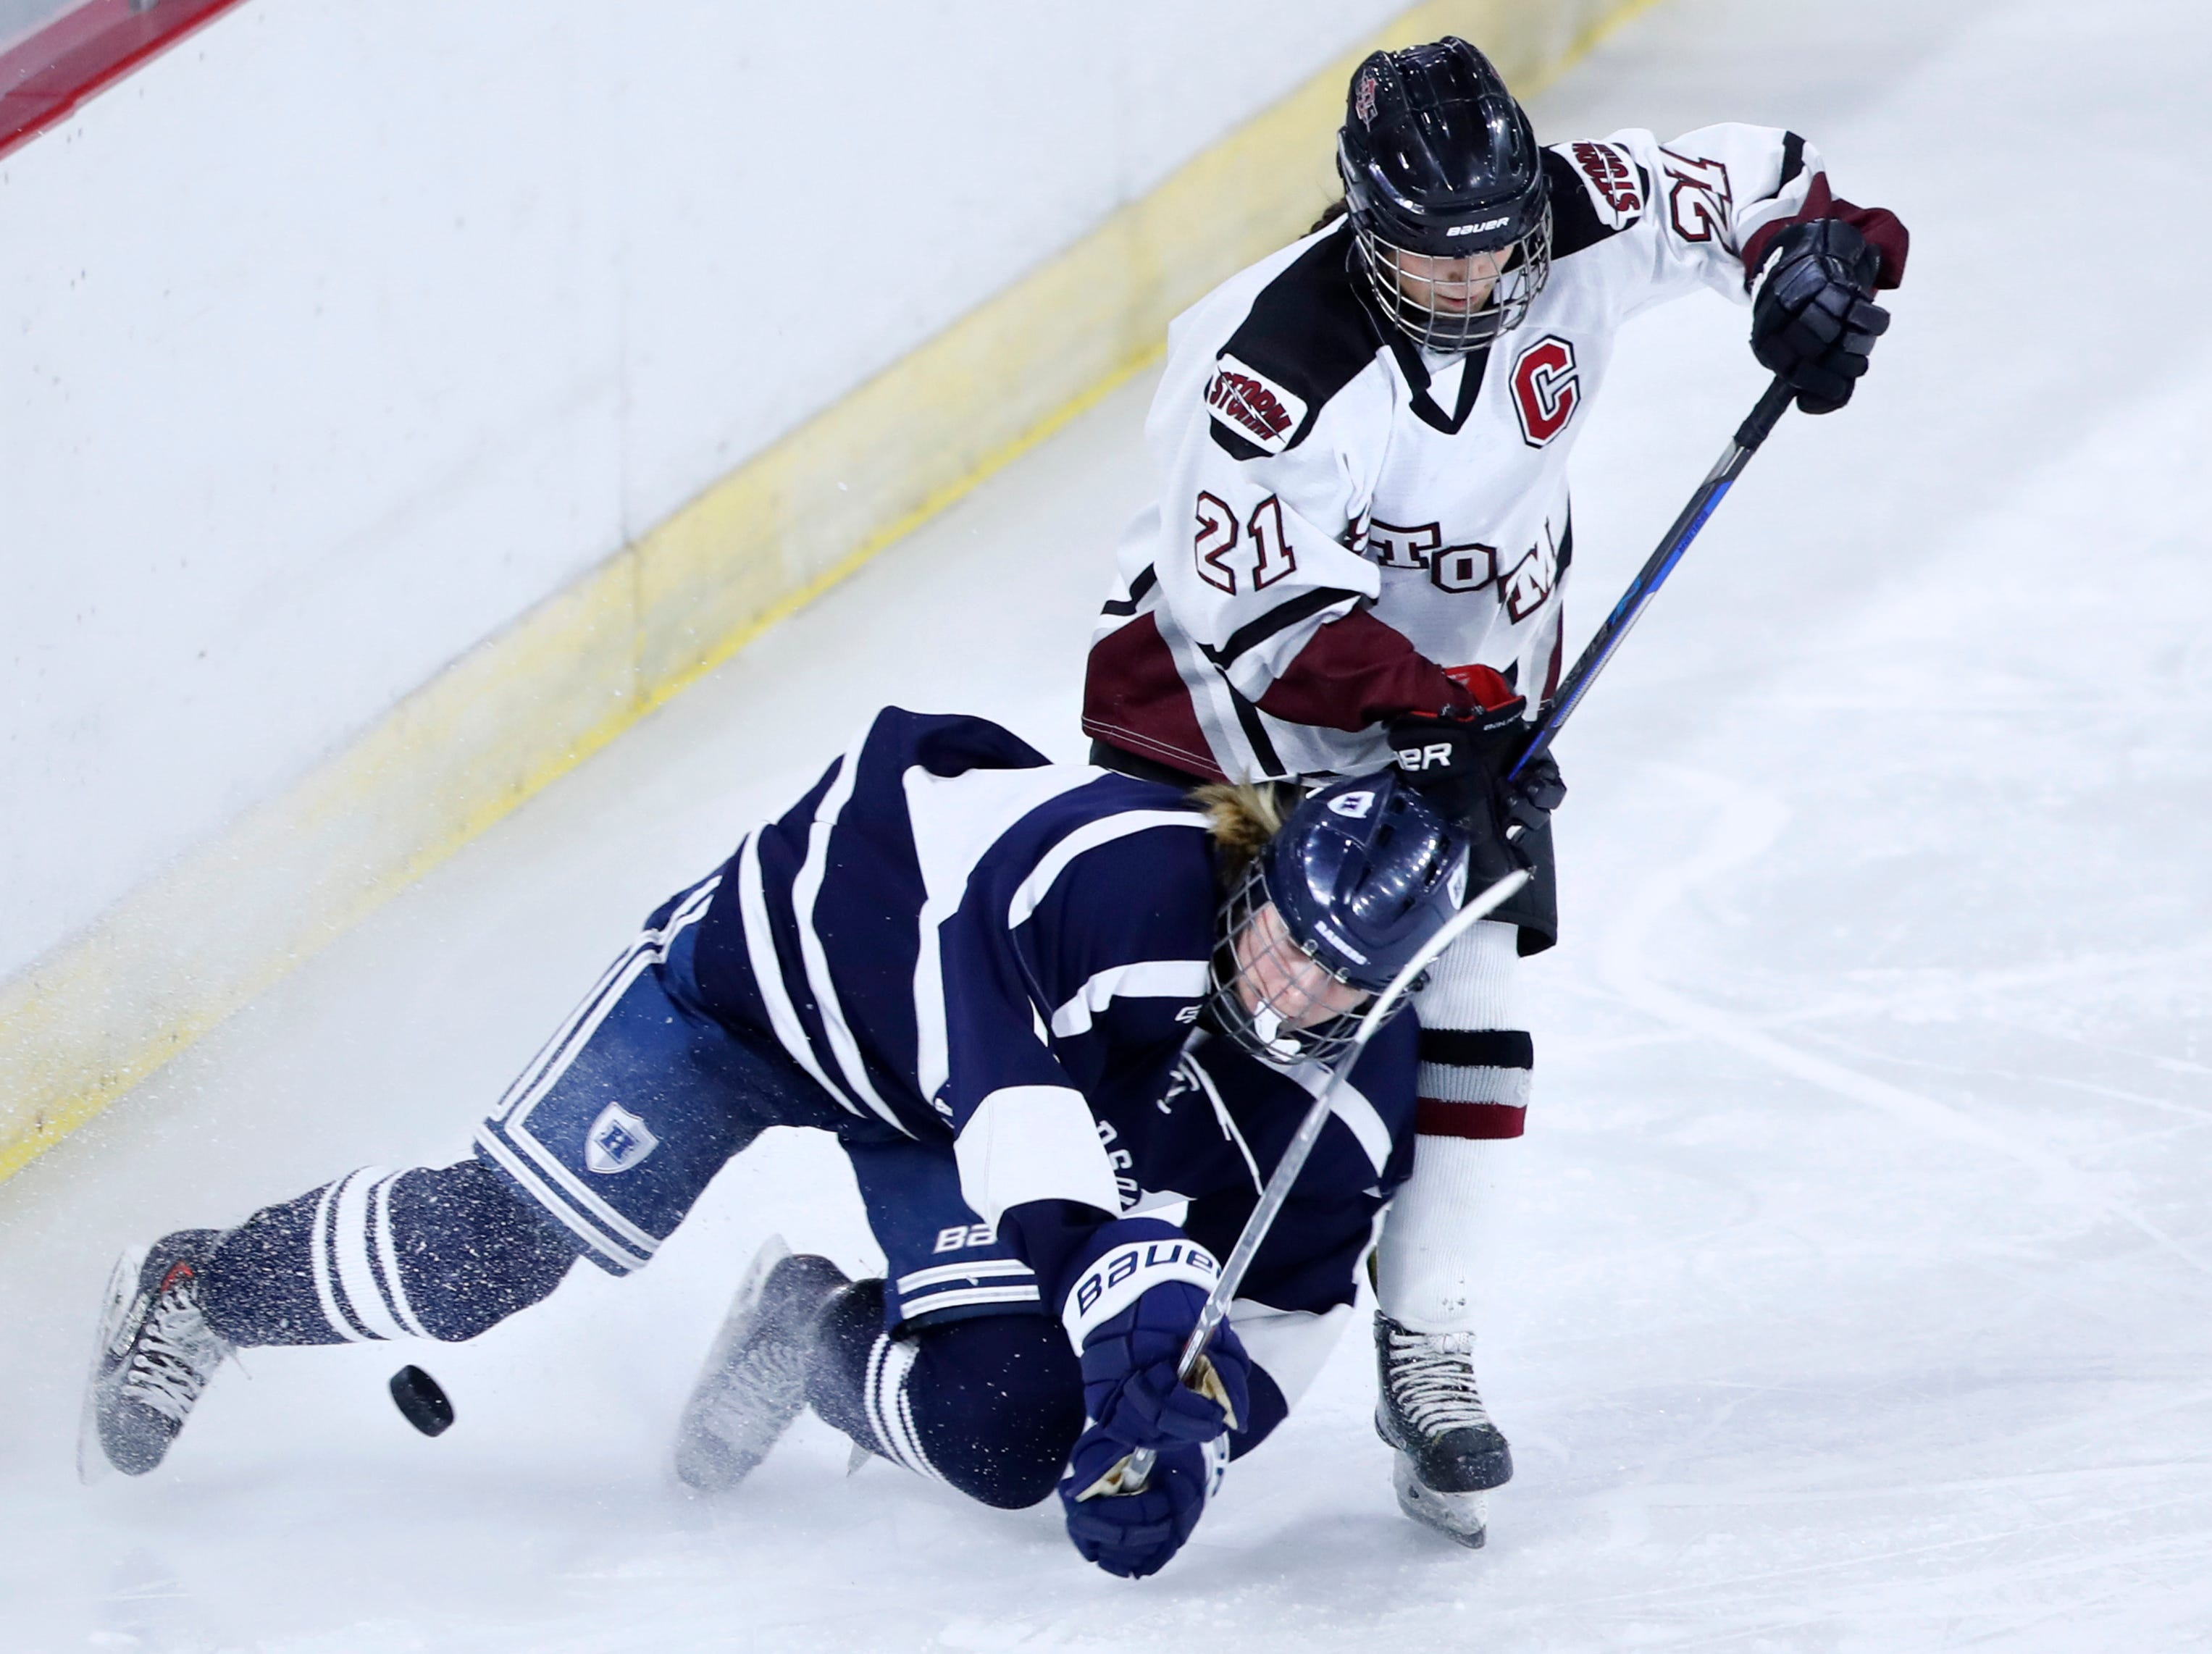 D.C. Everest Co-opÕs Kiley Hahner is blocked from the puck as HudsonÕs Kennedy Hendricks falls infront of her during the WIAA State Hockey Tournament semifinals Friday, March 1, 2019, at Veterans Memorial Coliseum in Madison, Wis.